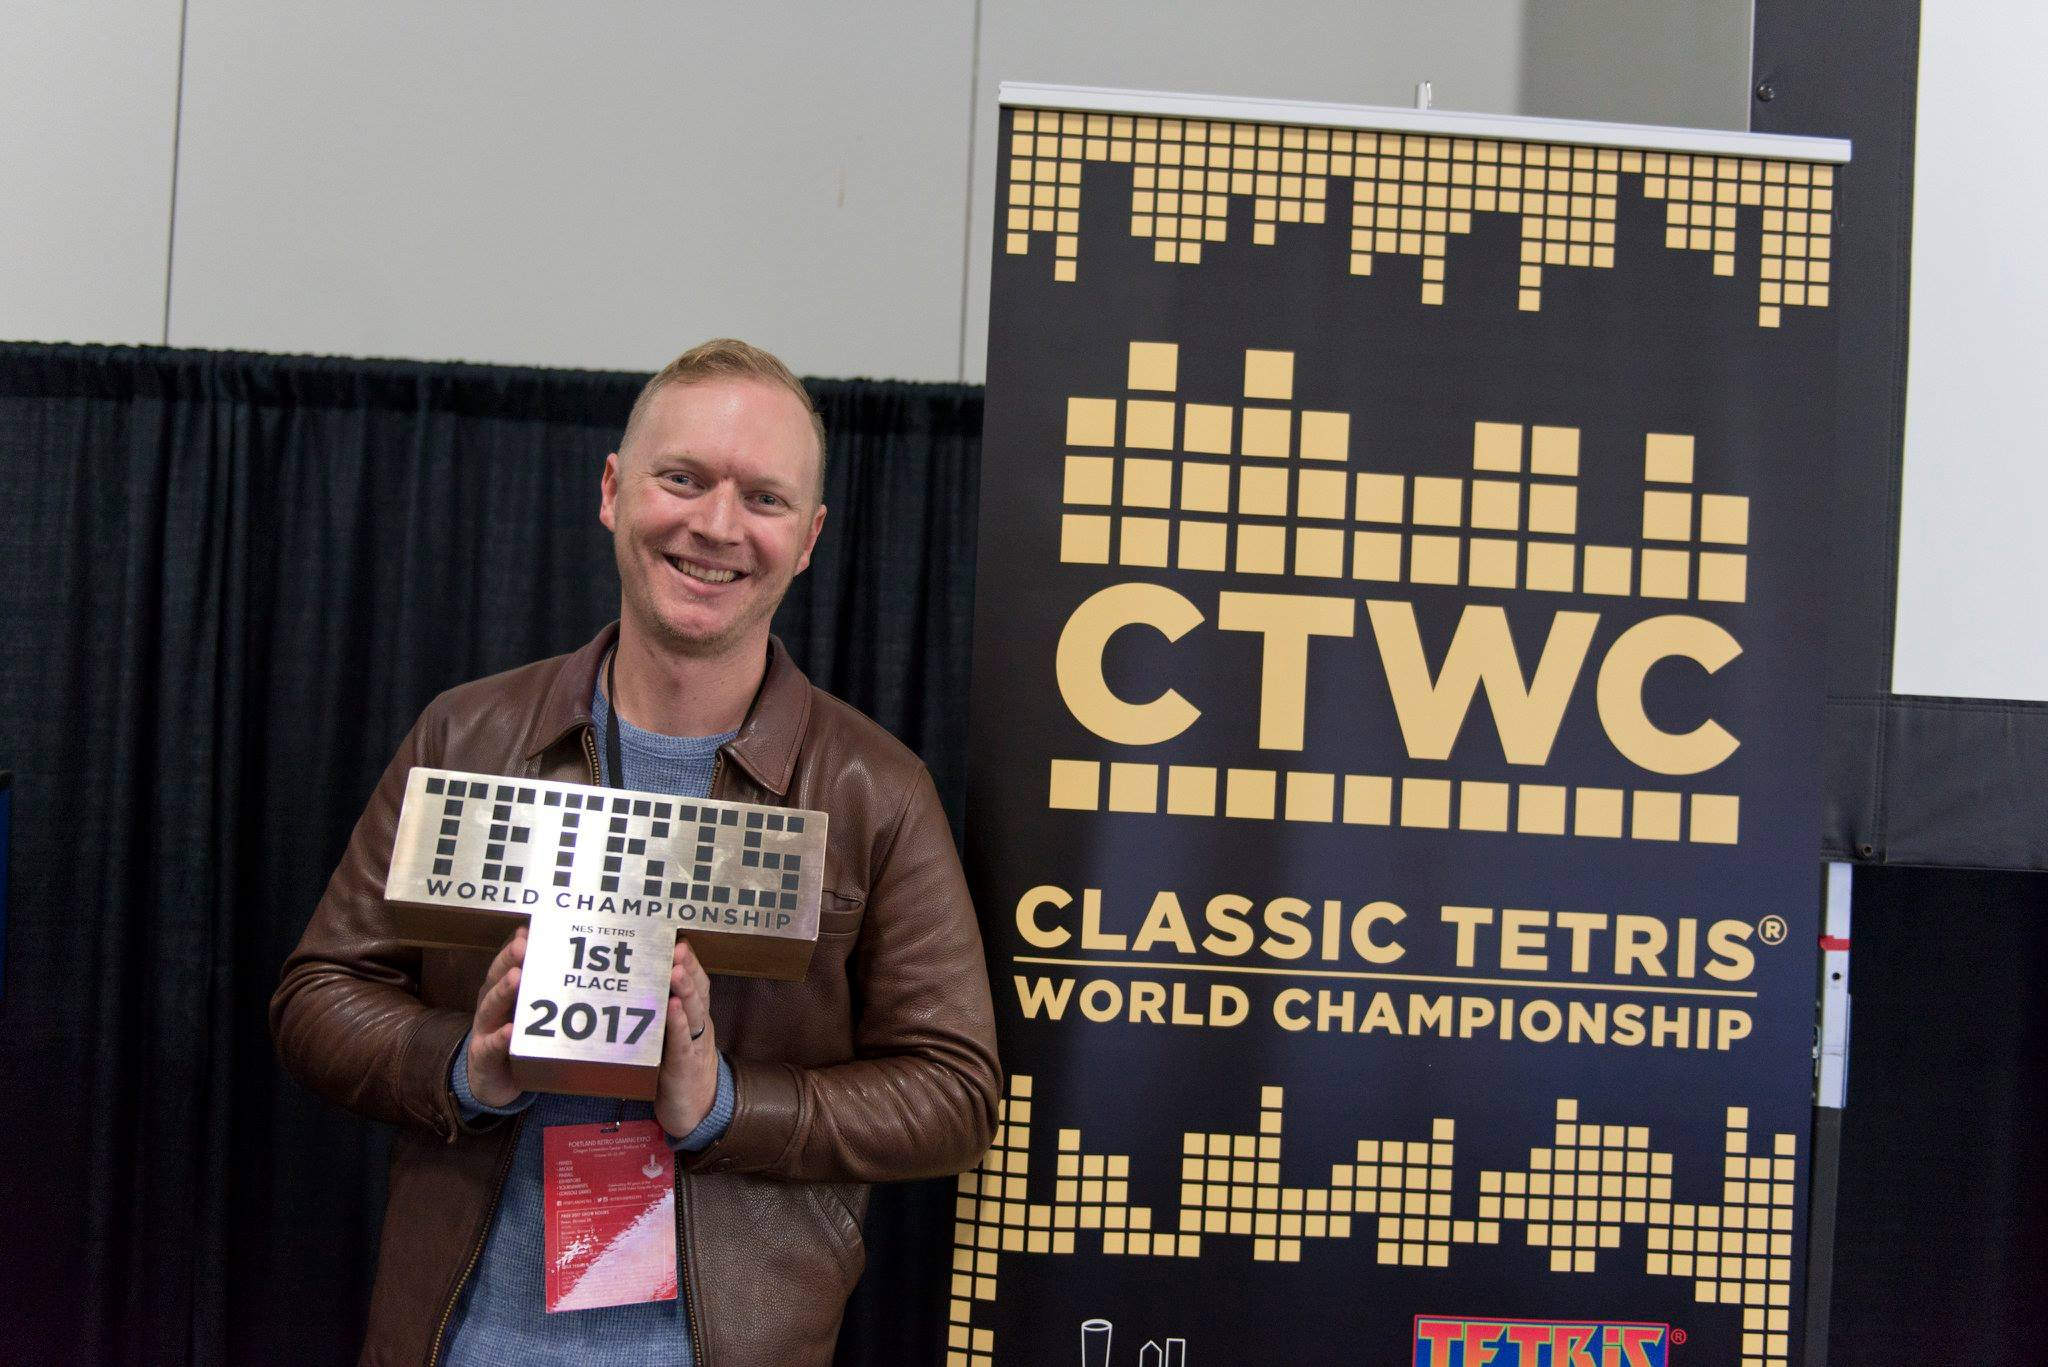 What You Missed During the 2017 Classic Tetris World Championship